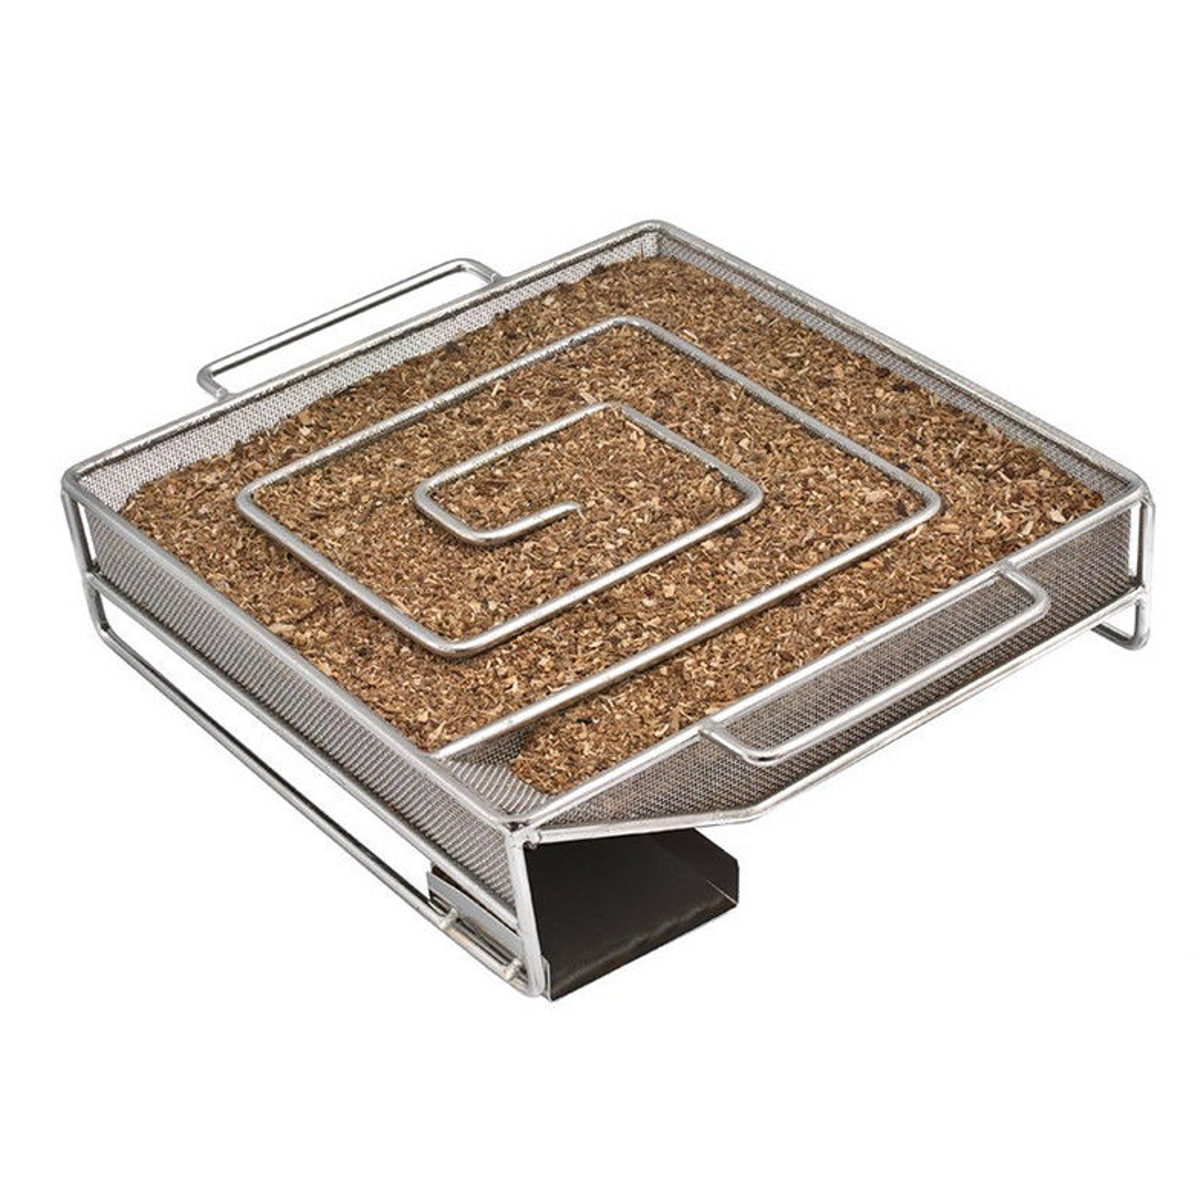 Square Cold Smoke Generator Charcoal Grill Cooking Tools Wood Chip Smoker Outdoor Grill For BBQ Tool